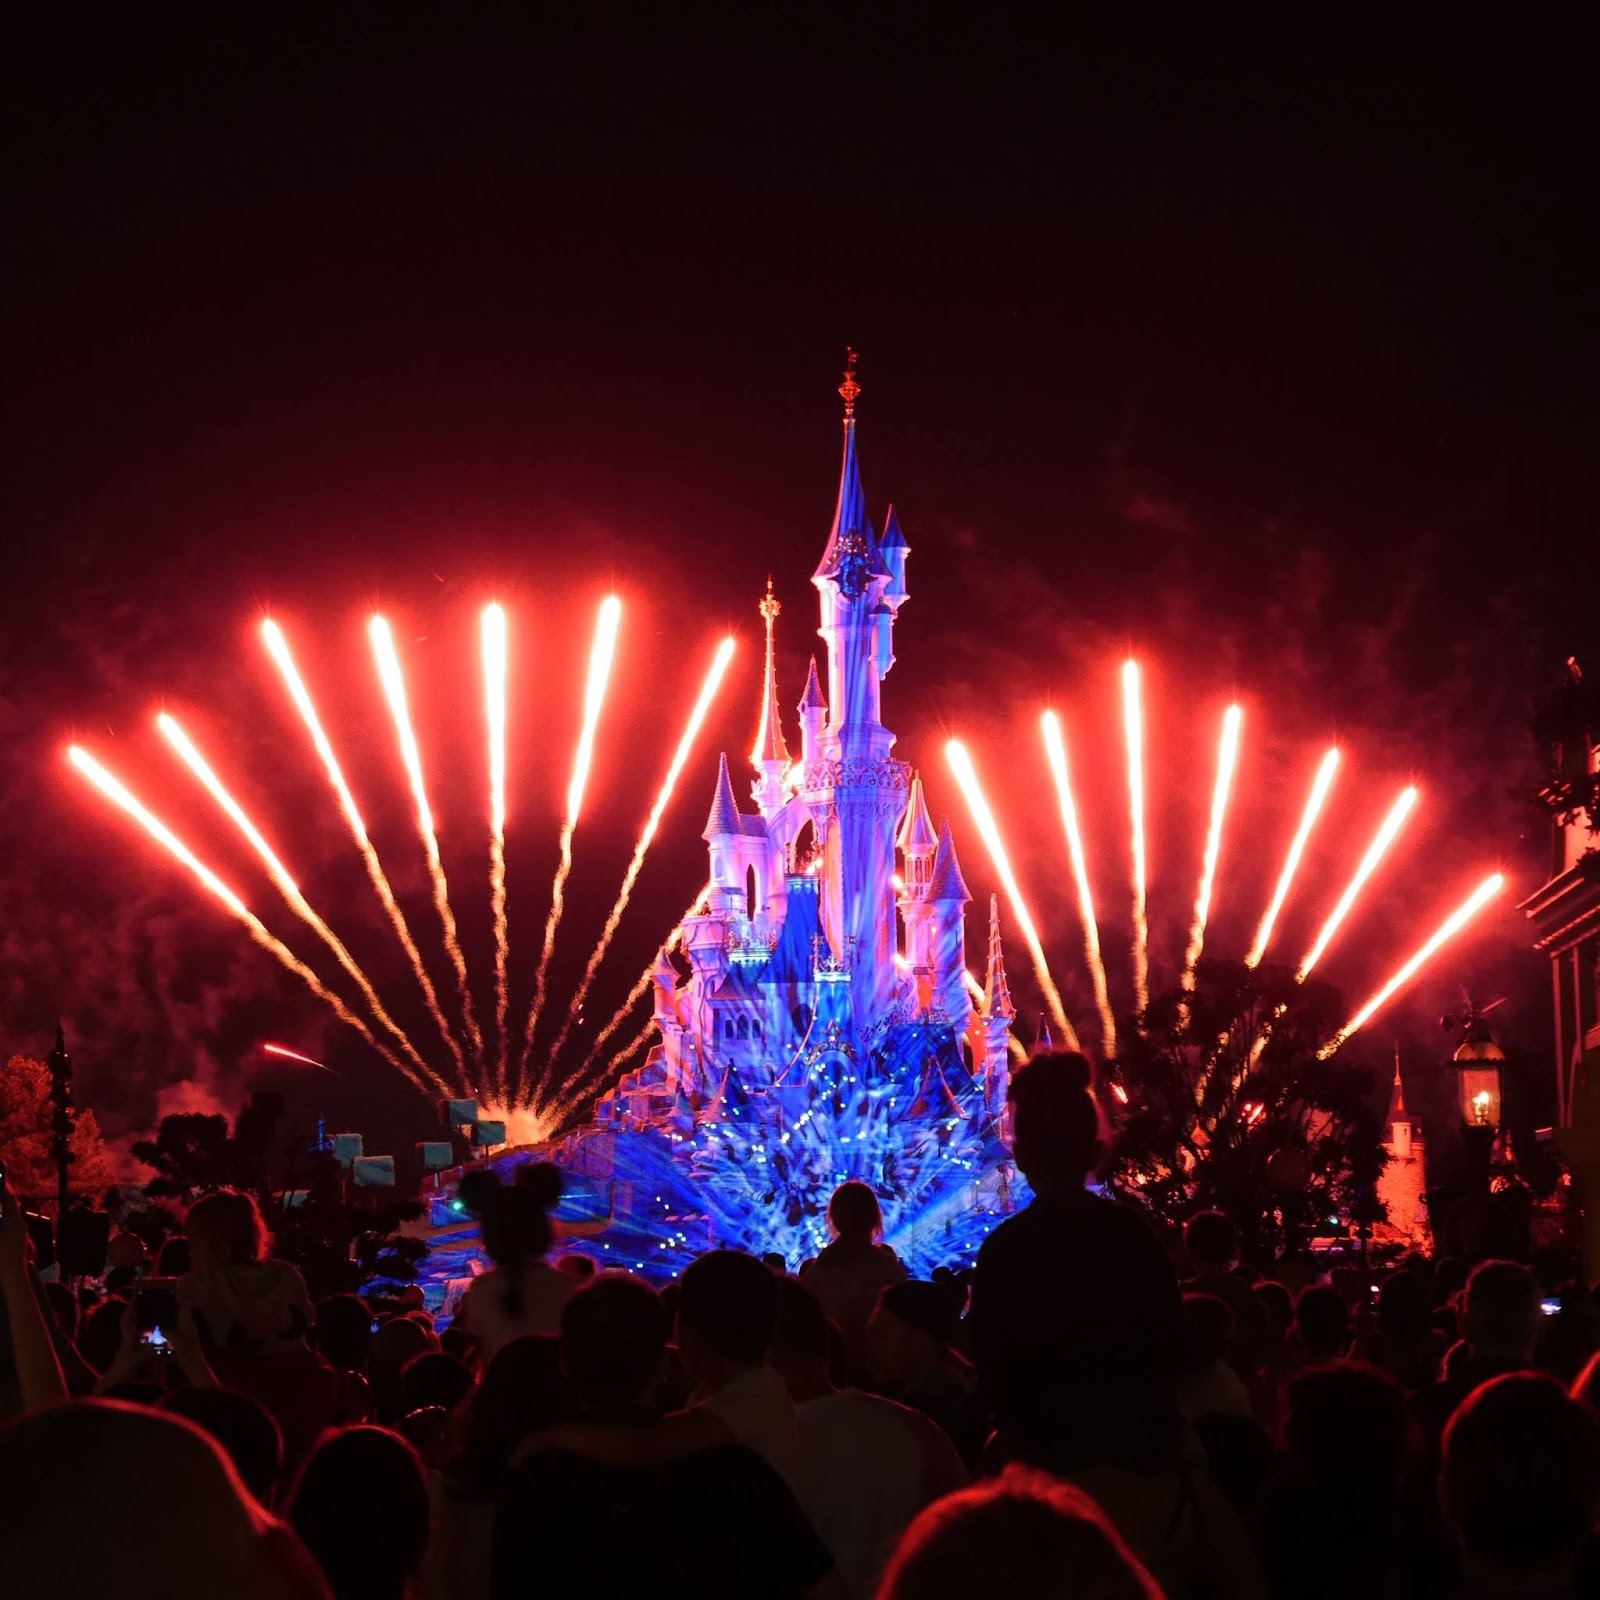 Fireworks at Disneyland Paris